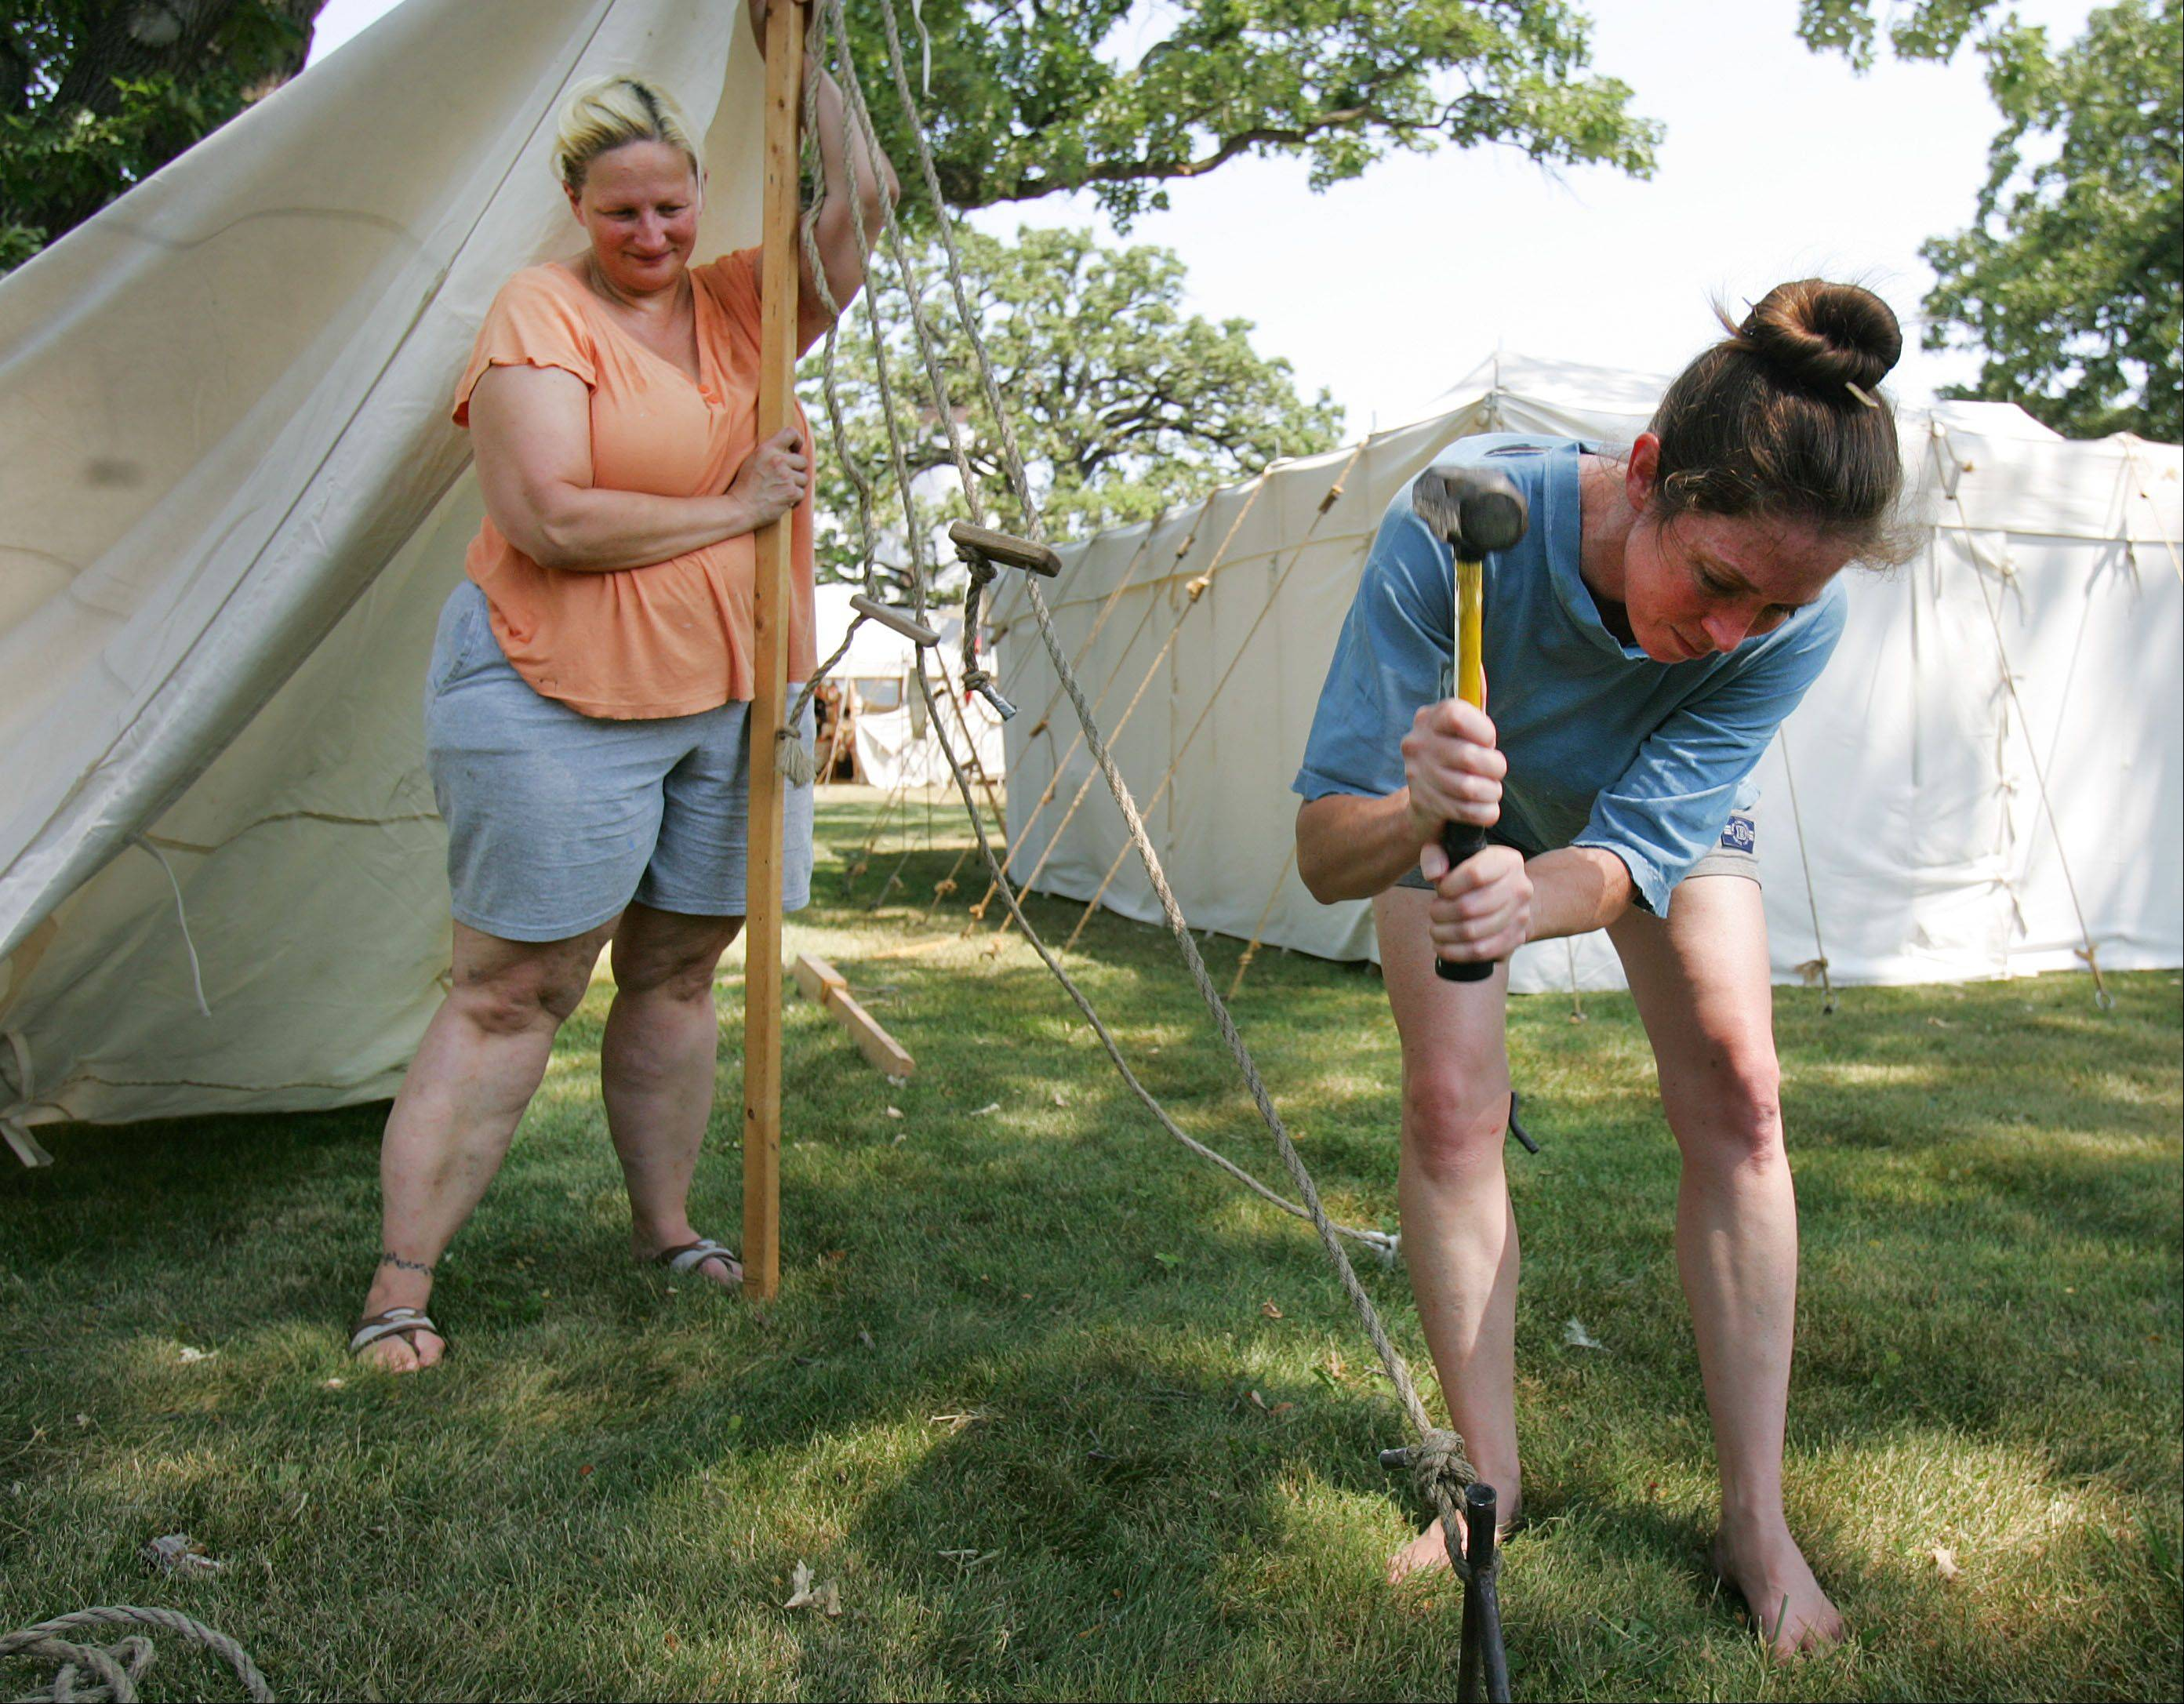 Soap makers Lori Malina of Lake Villa, left, and Laura Zielinski of Kenosha, Wisconsin set up their tent in preparation for Civil War days at Lakewood Forest Preserve near Wauconda Friday. The event runs all weekend.